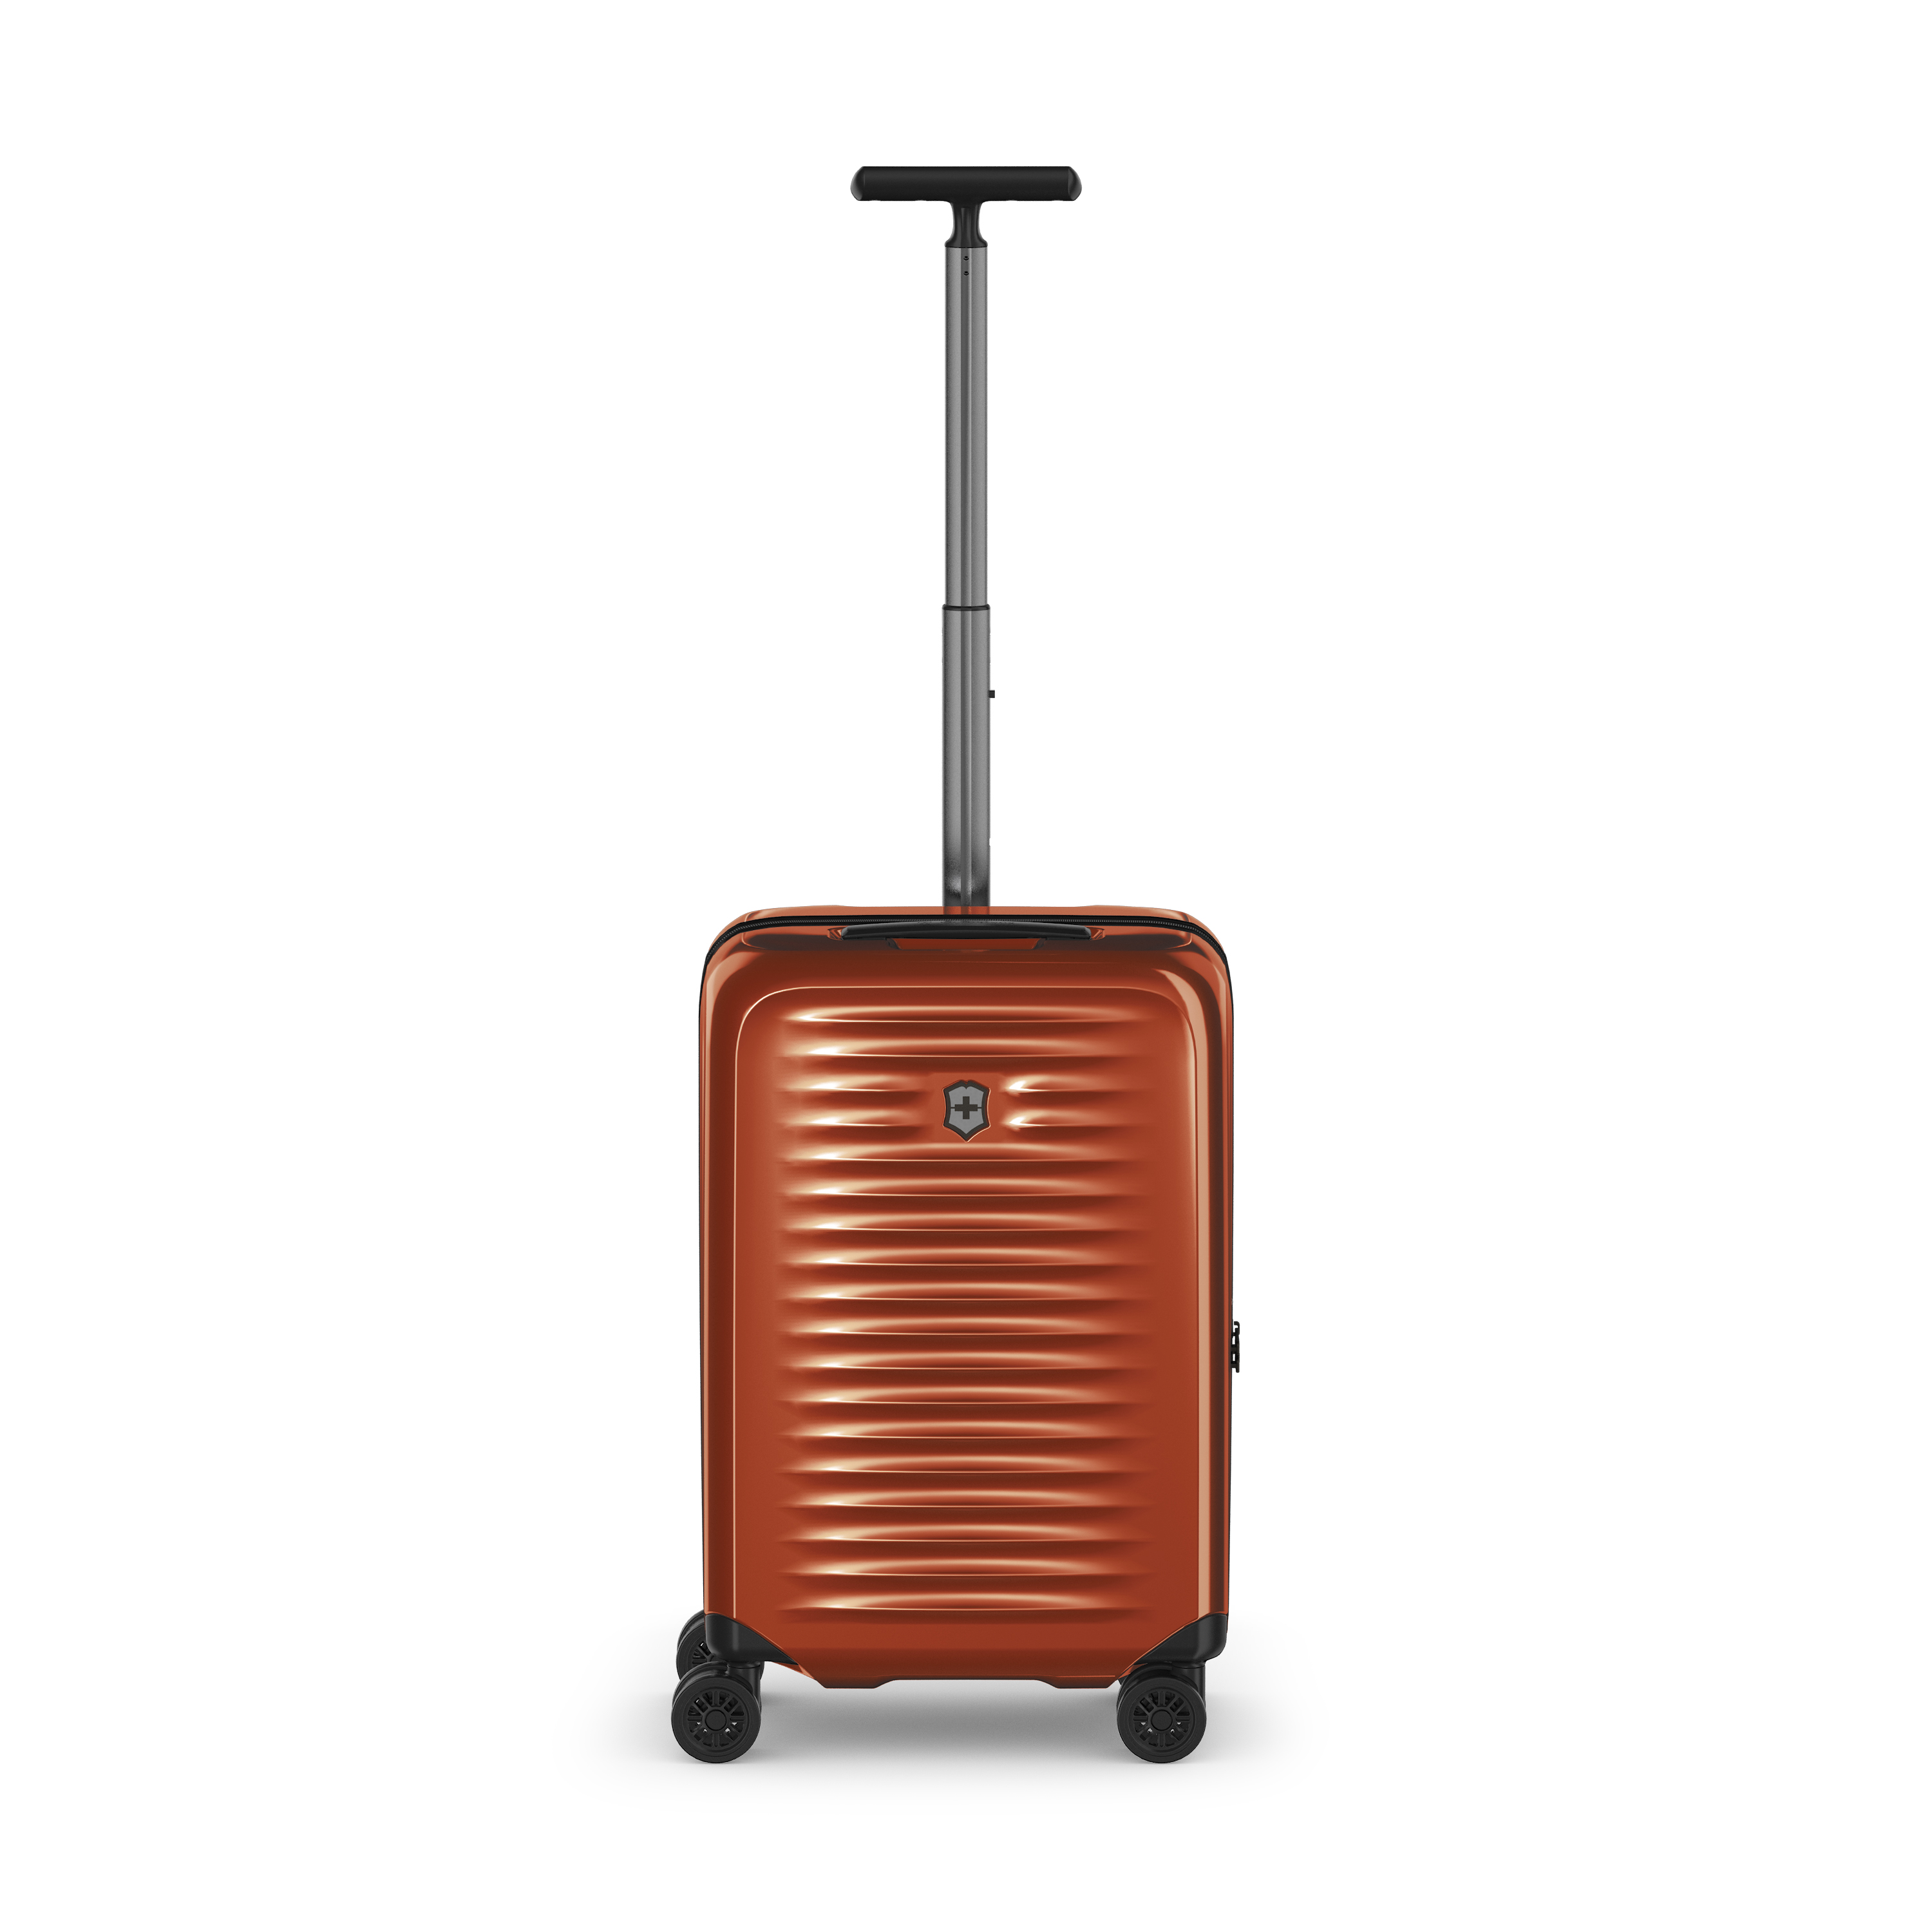 Airox Frequent Flyer Hardside Carry-On